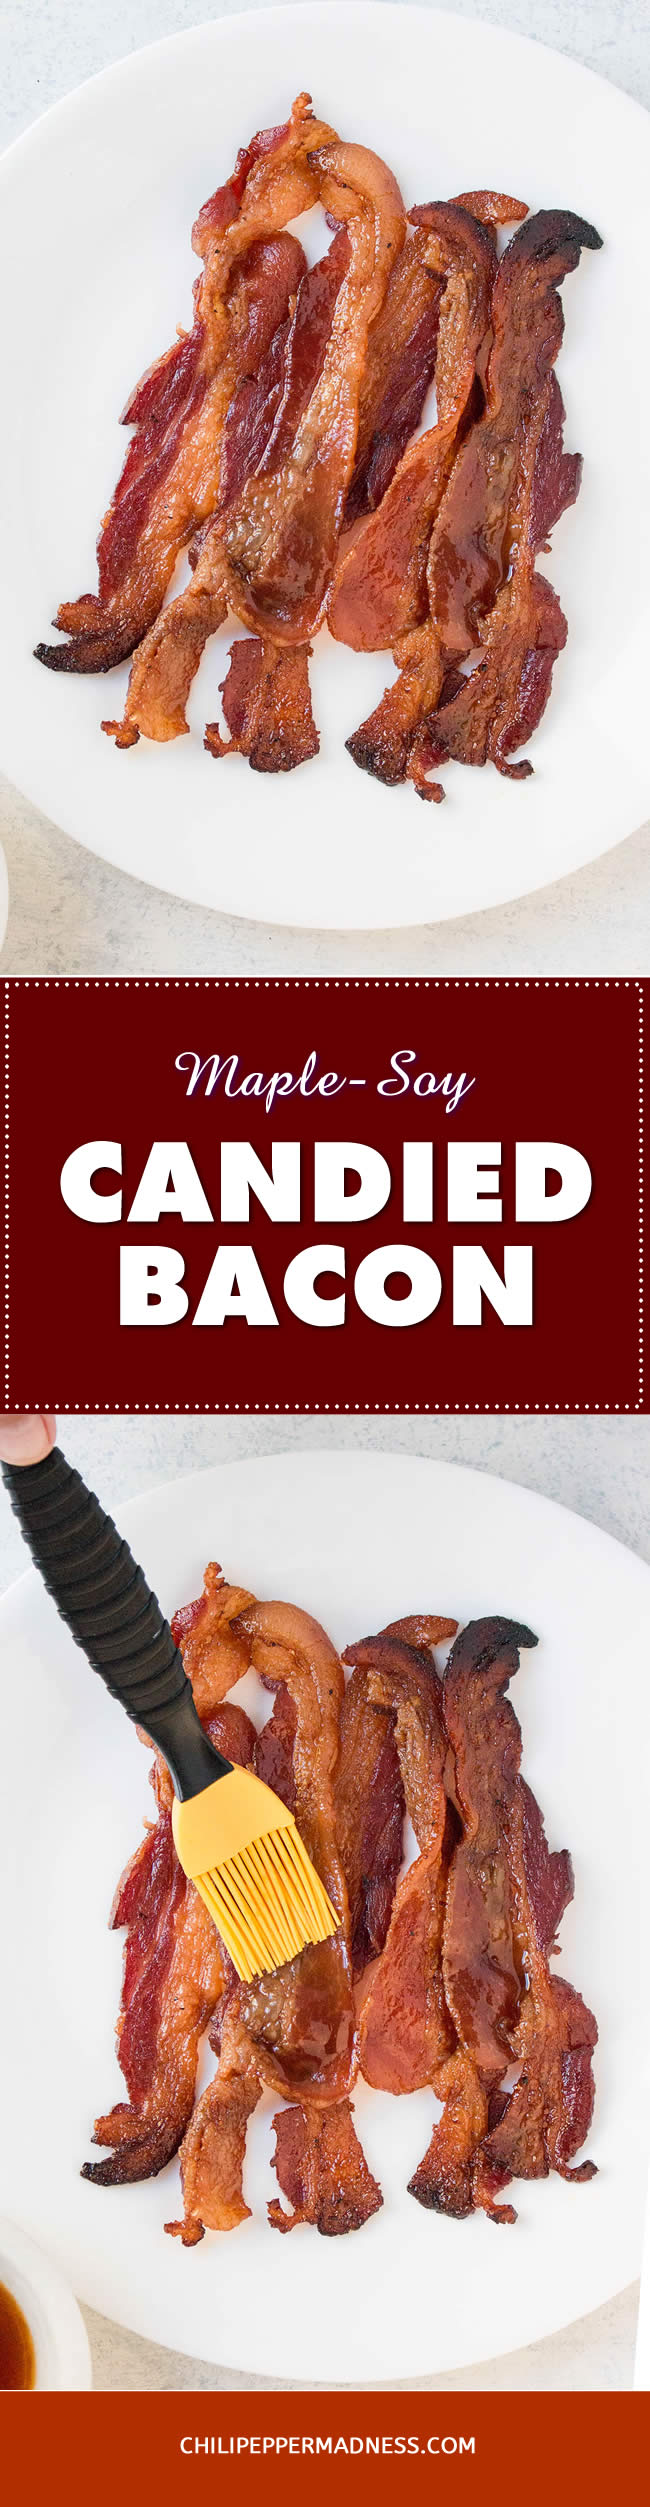 Oven Baked Maple-Soy Candied Bacon - Recipe